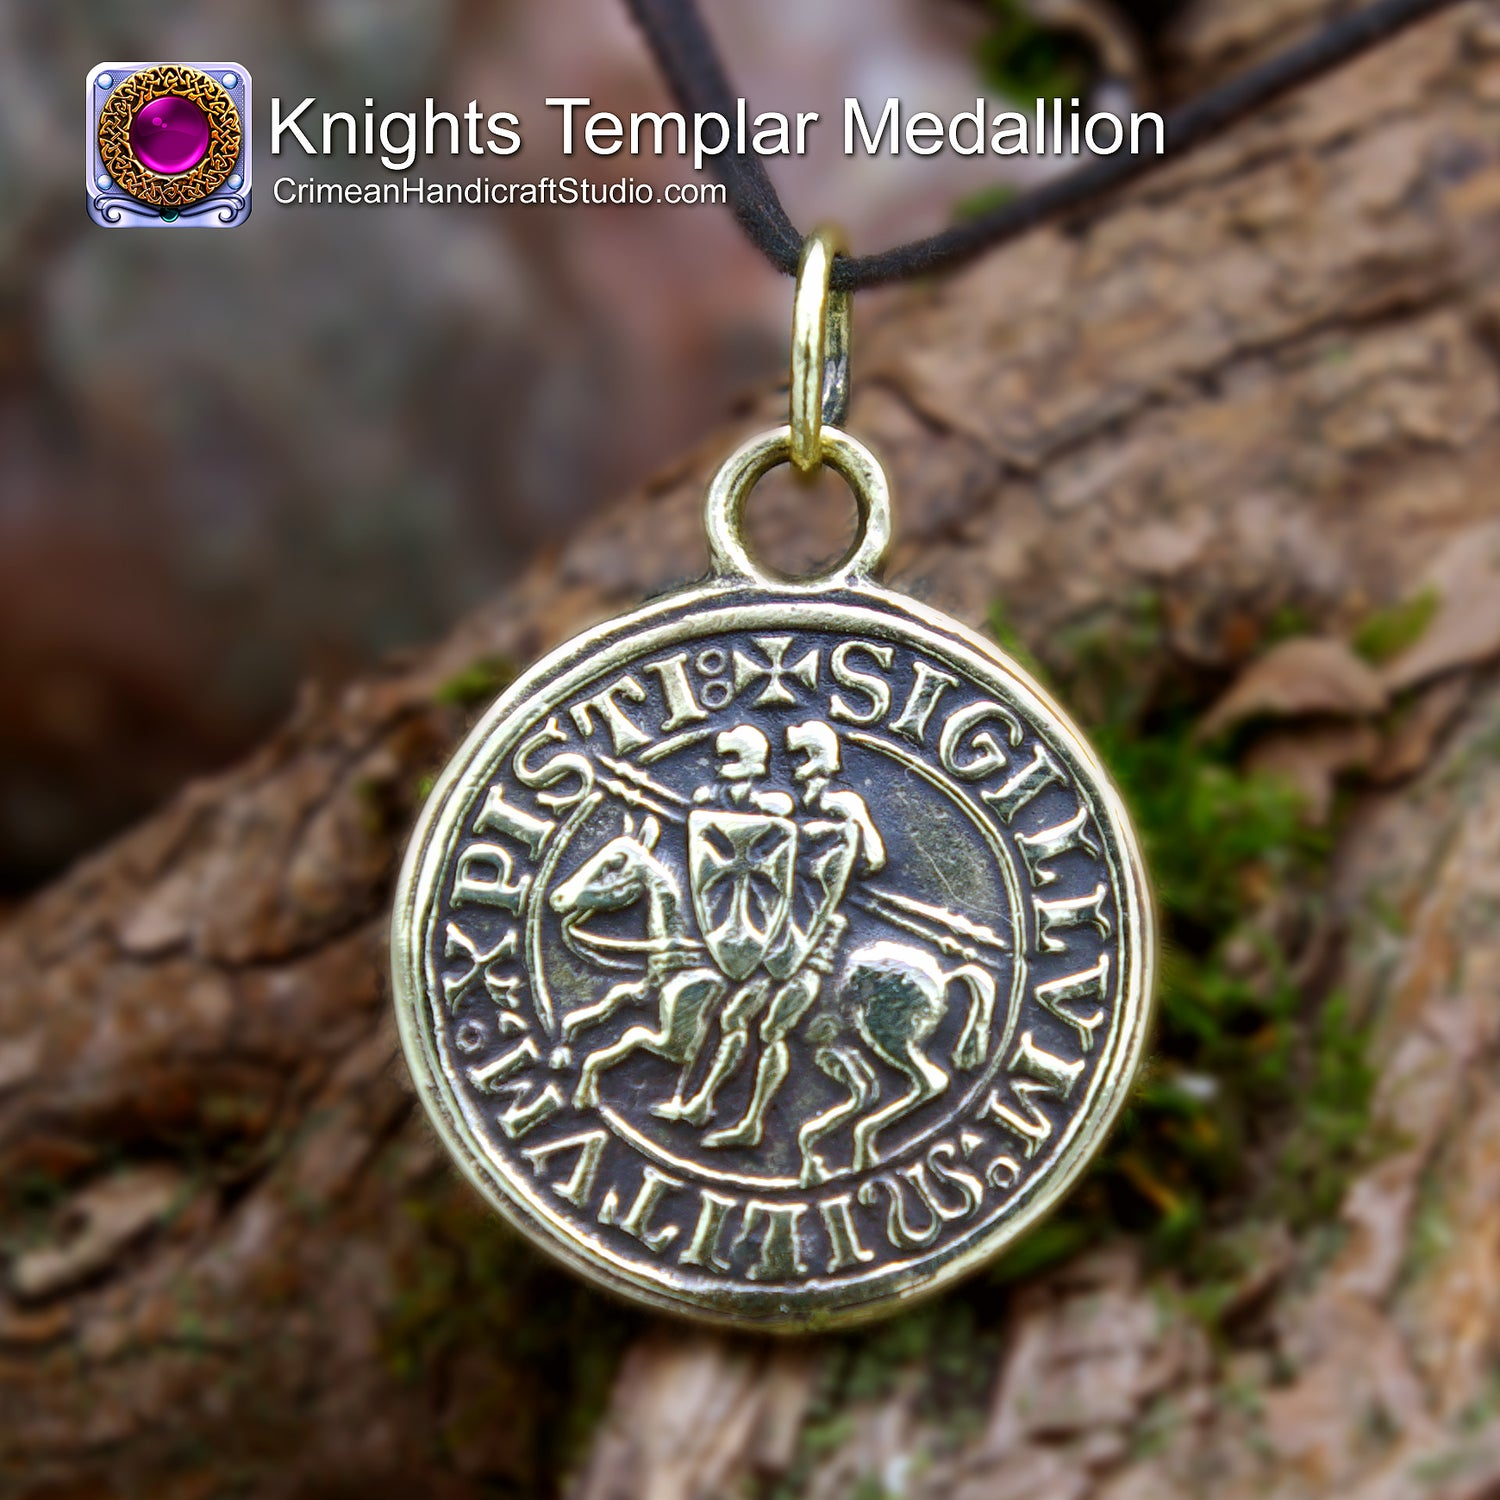 Image of Knights Templar Medallion